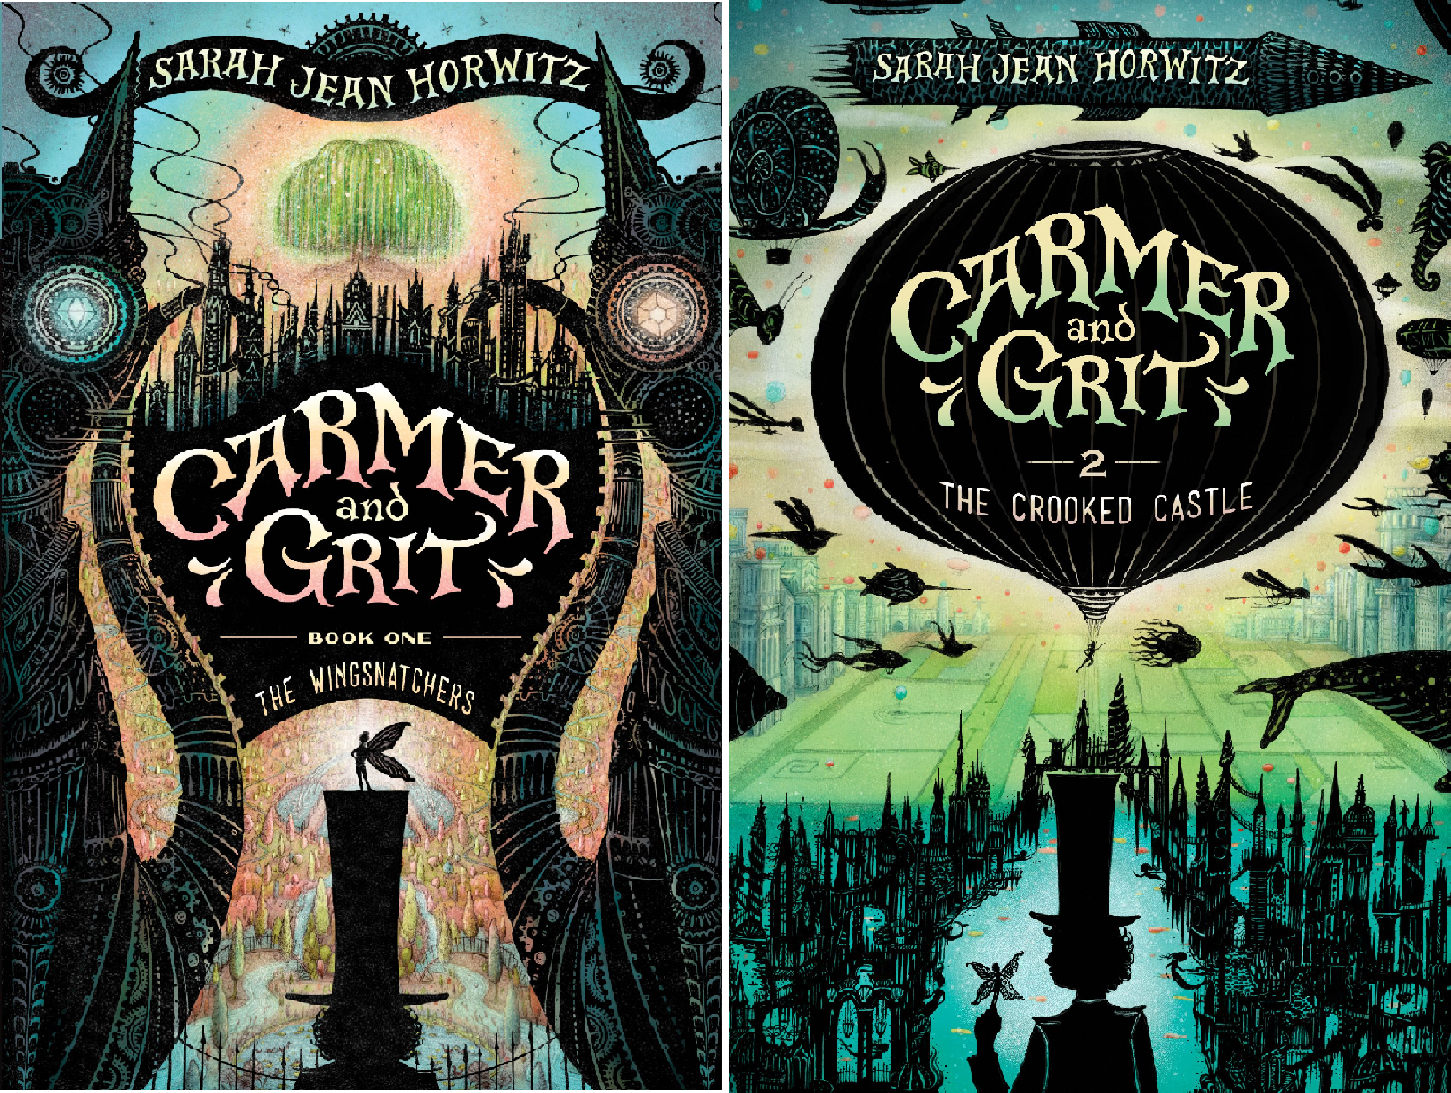 Carmer and Grit (2 Book Series)